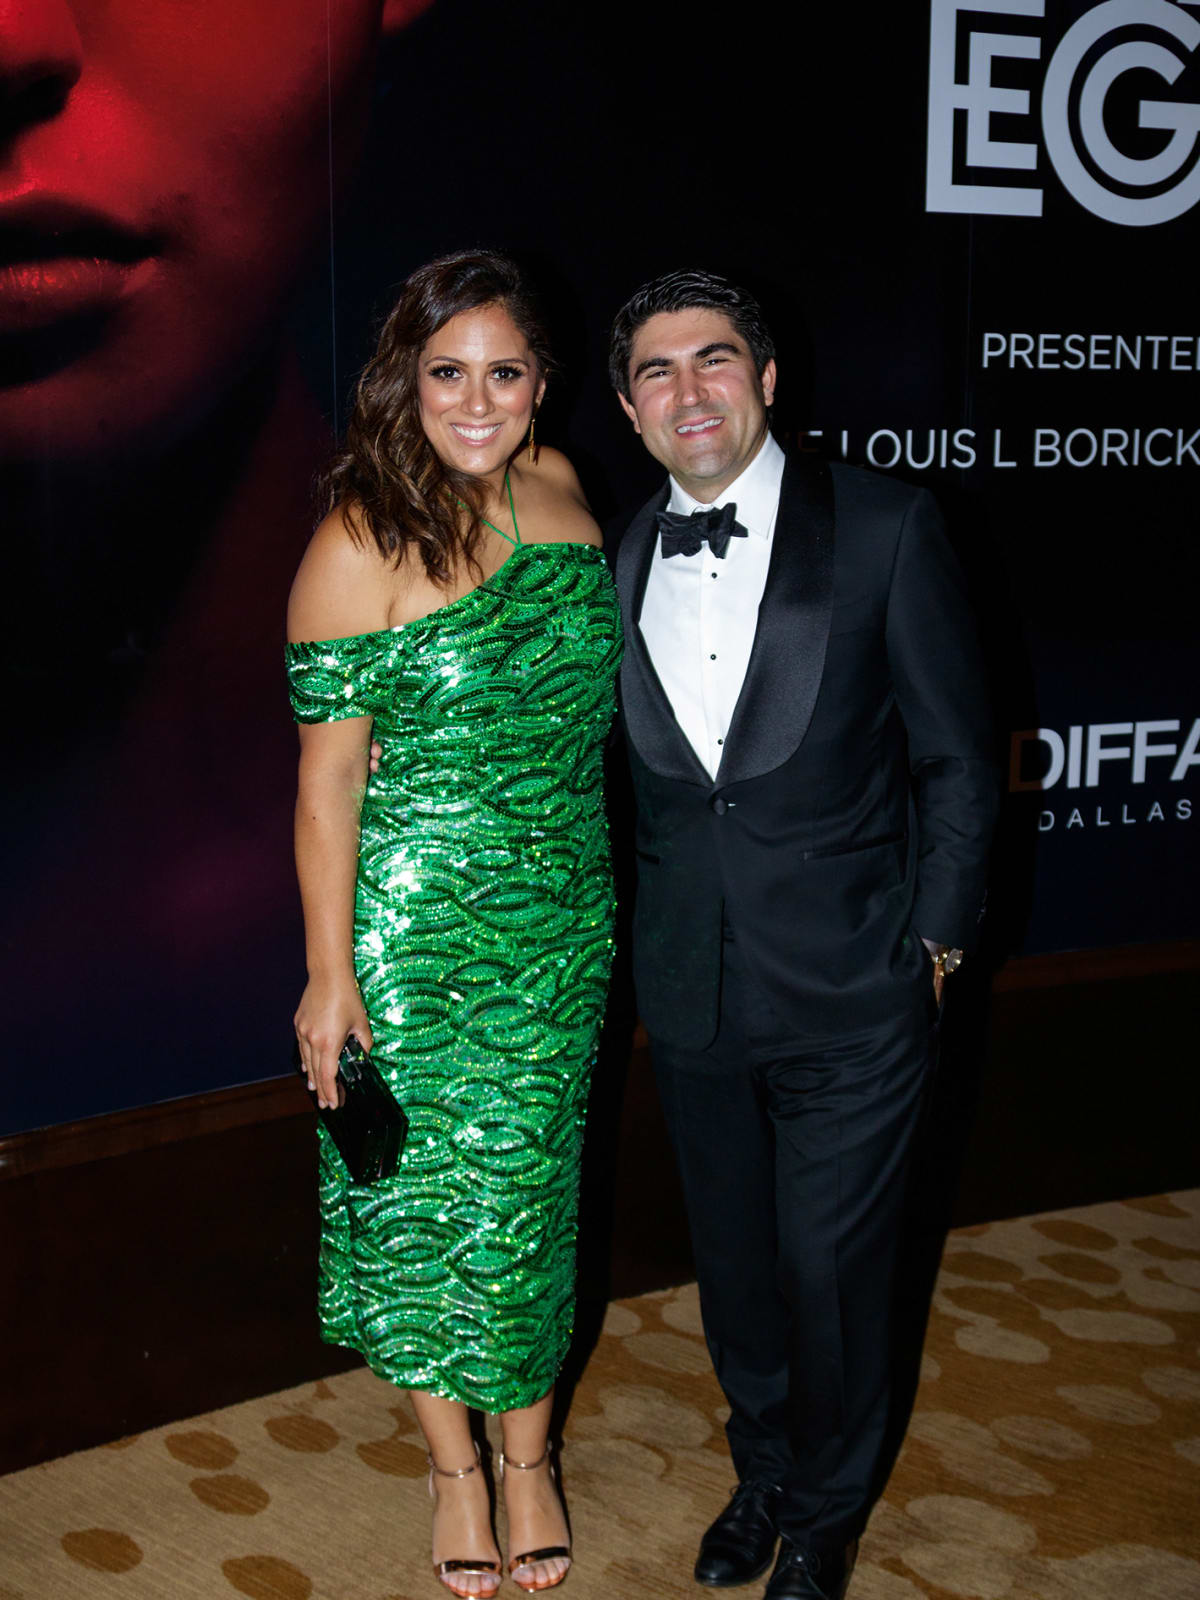 Karla Noone, Andrew Noone at House of DIFFA 2018